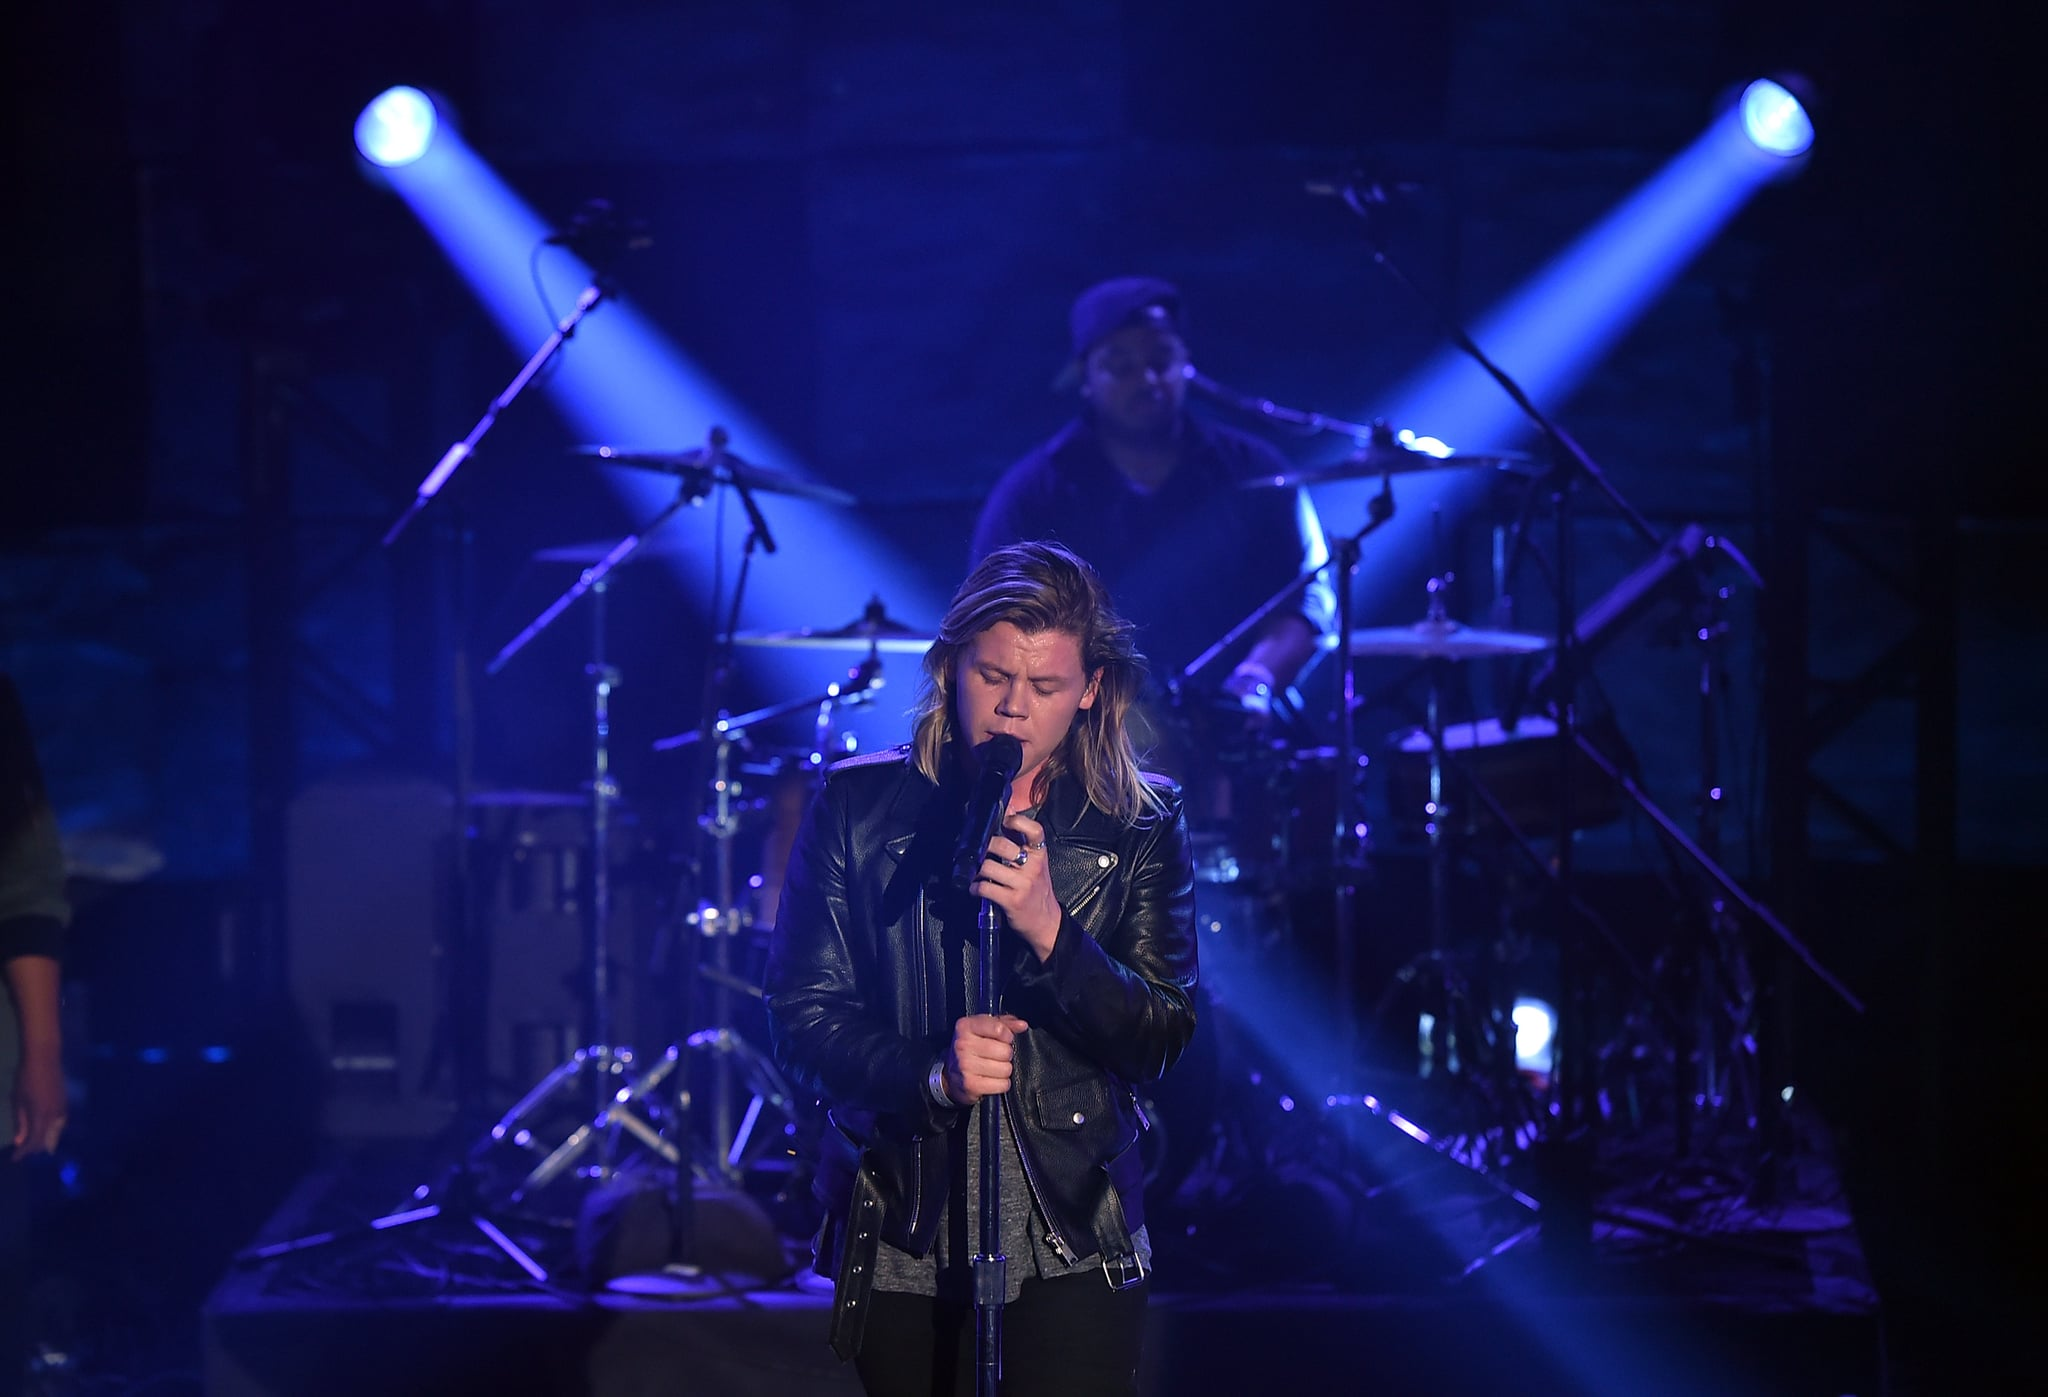 BURBANK, CALIFORNIA - MARCH 29:  Singer Conrad Sewell performs on the Honda Stage at the iHeartRadio Theater on March 29, 2016 in Burbank, California.  (Photo by Kevin Winter/Getty Images for iHeartMedia)